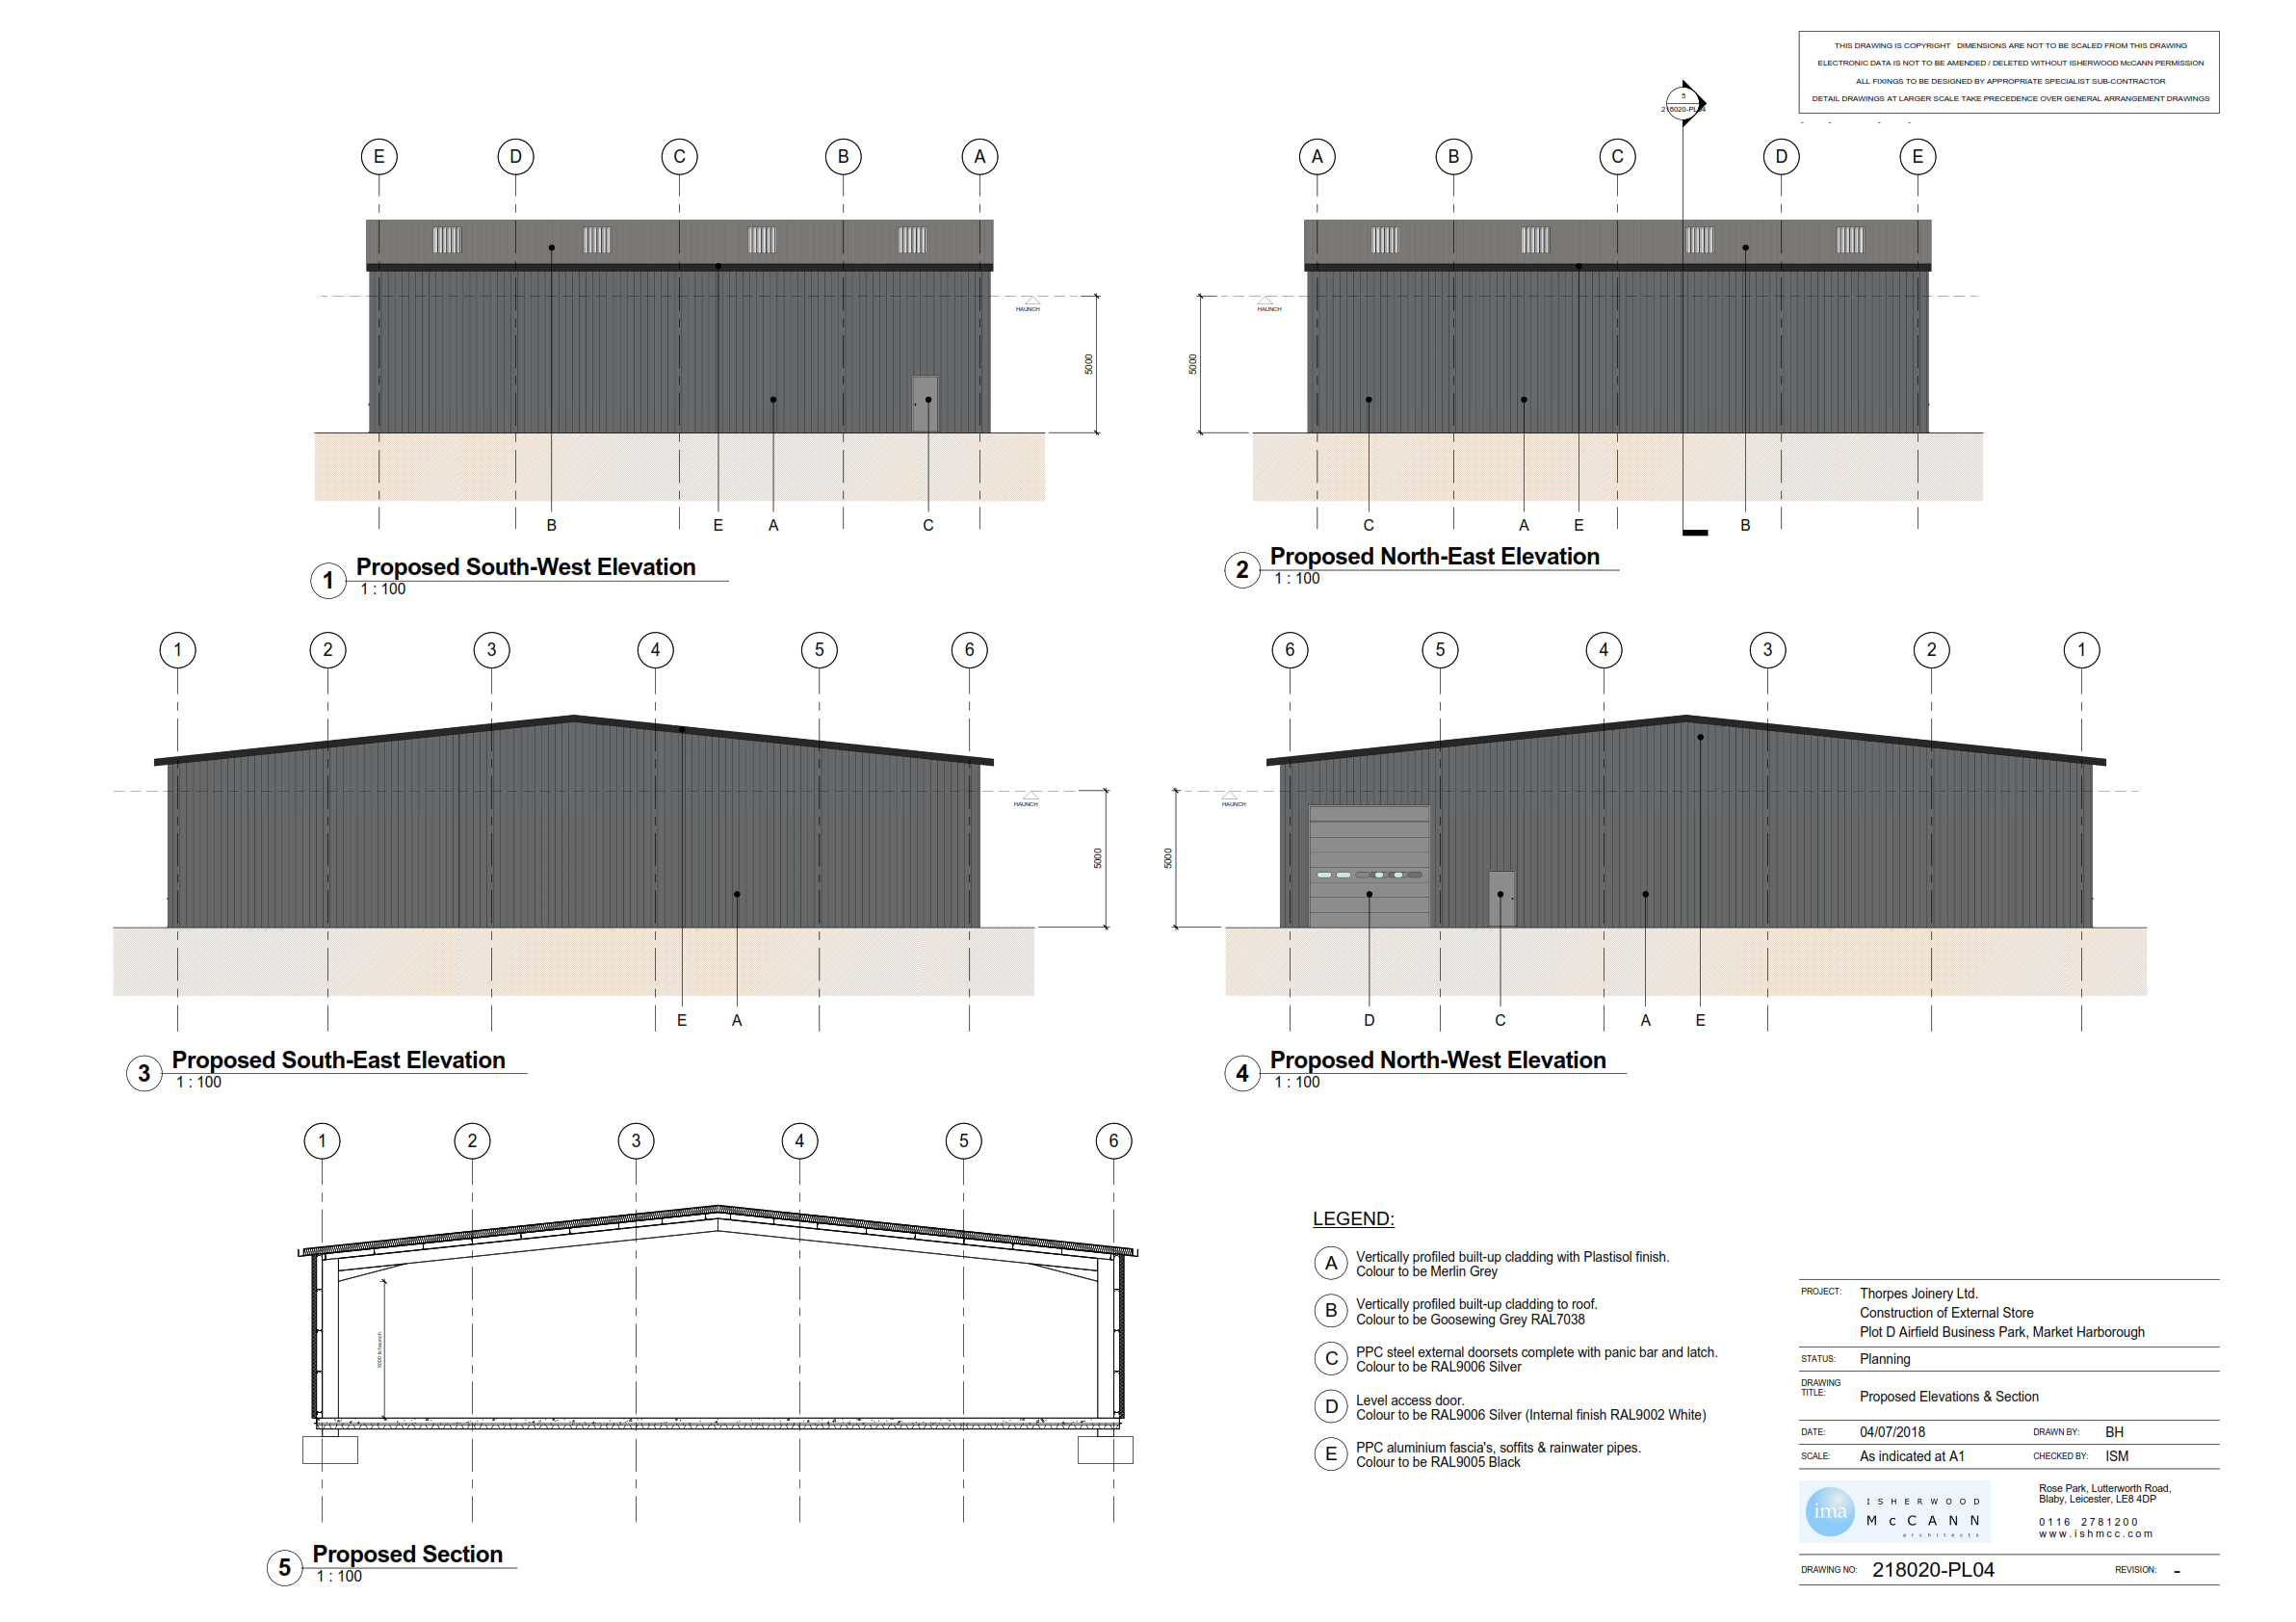 218020-PL04 - Proposed Elevations and Section Revision - (A1)_001.png